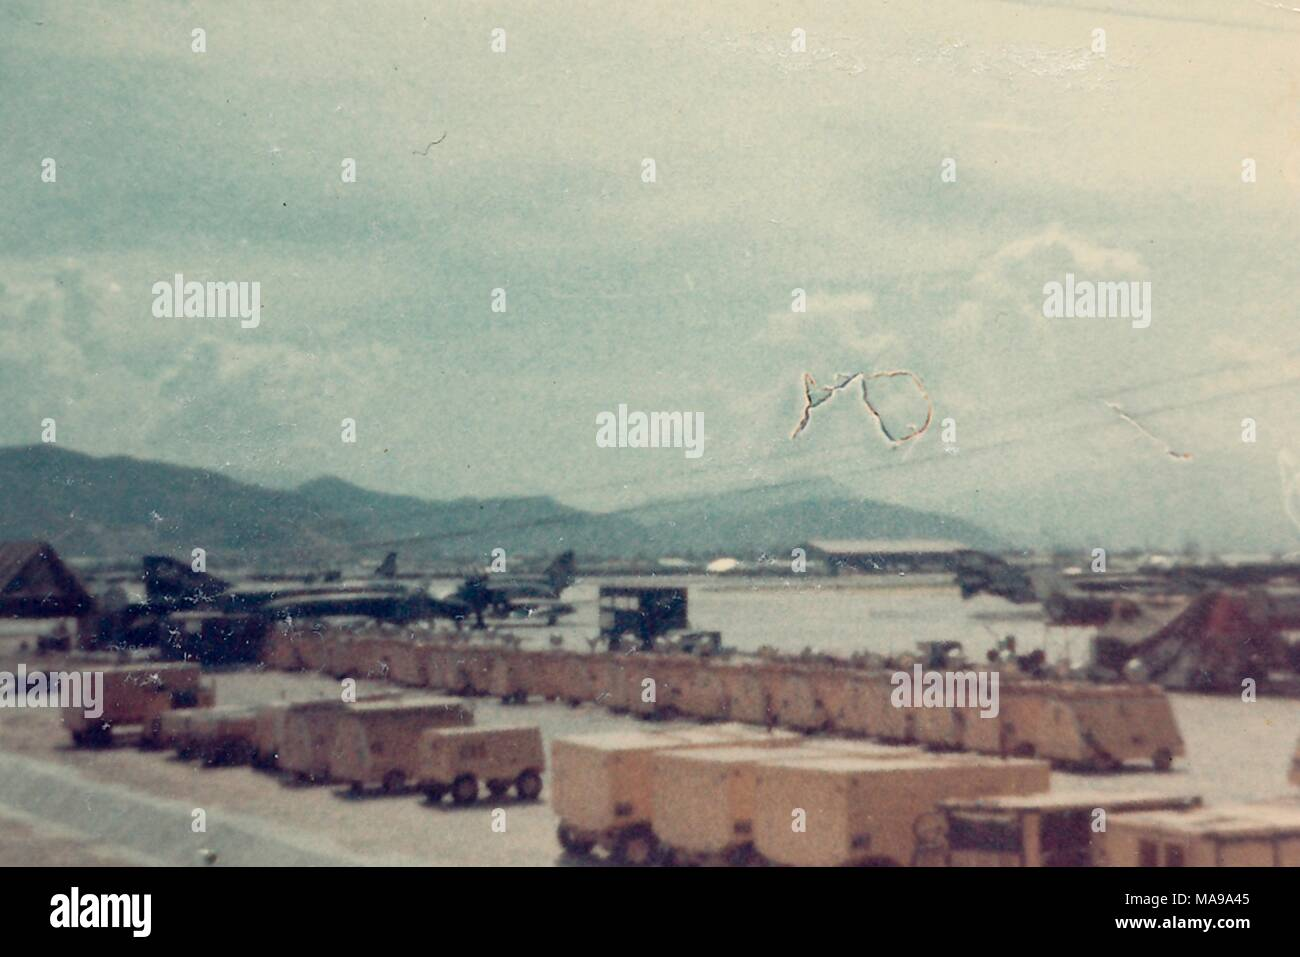 Color photograph, showing several rows of supplies or shipping containers, and a number of airplanes docked on an airstrip, with mountains in the background, photographed in Vietnam during the Vietnam War, 1968. () - Stock Image